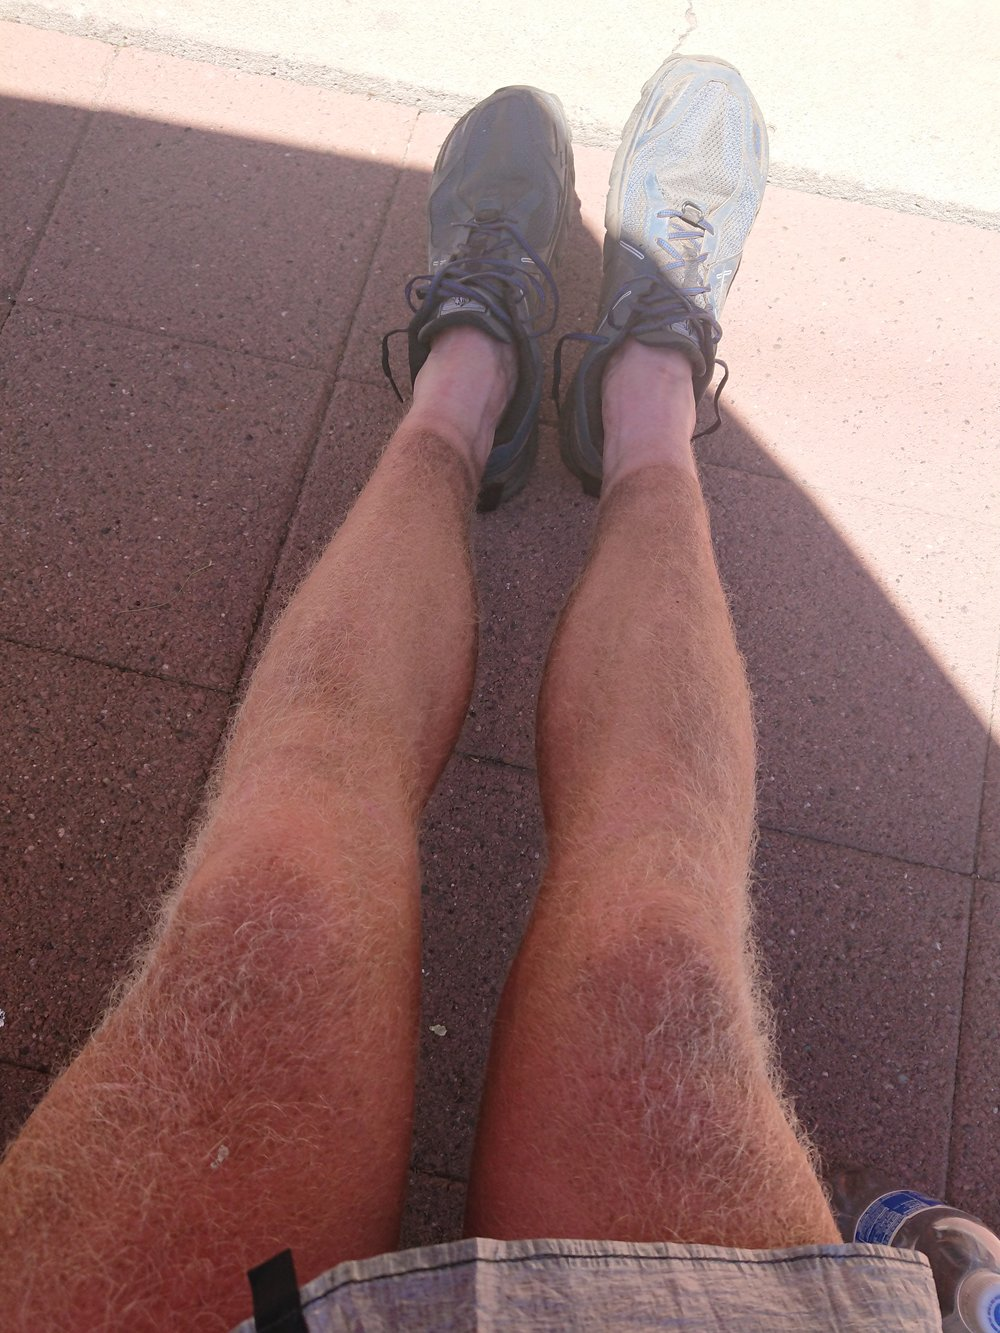 My legs are showing a bit of a hiker tan which is a mix of dirt and sun tan